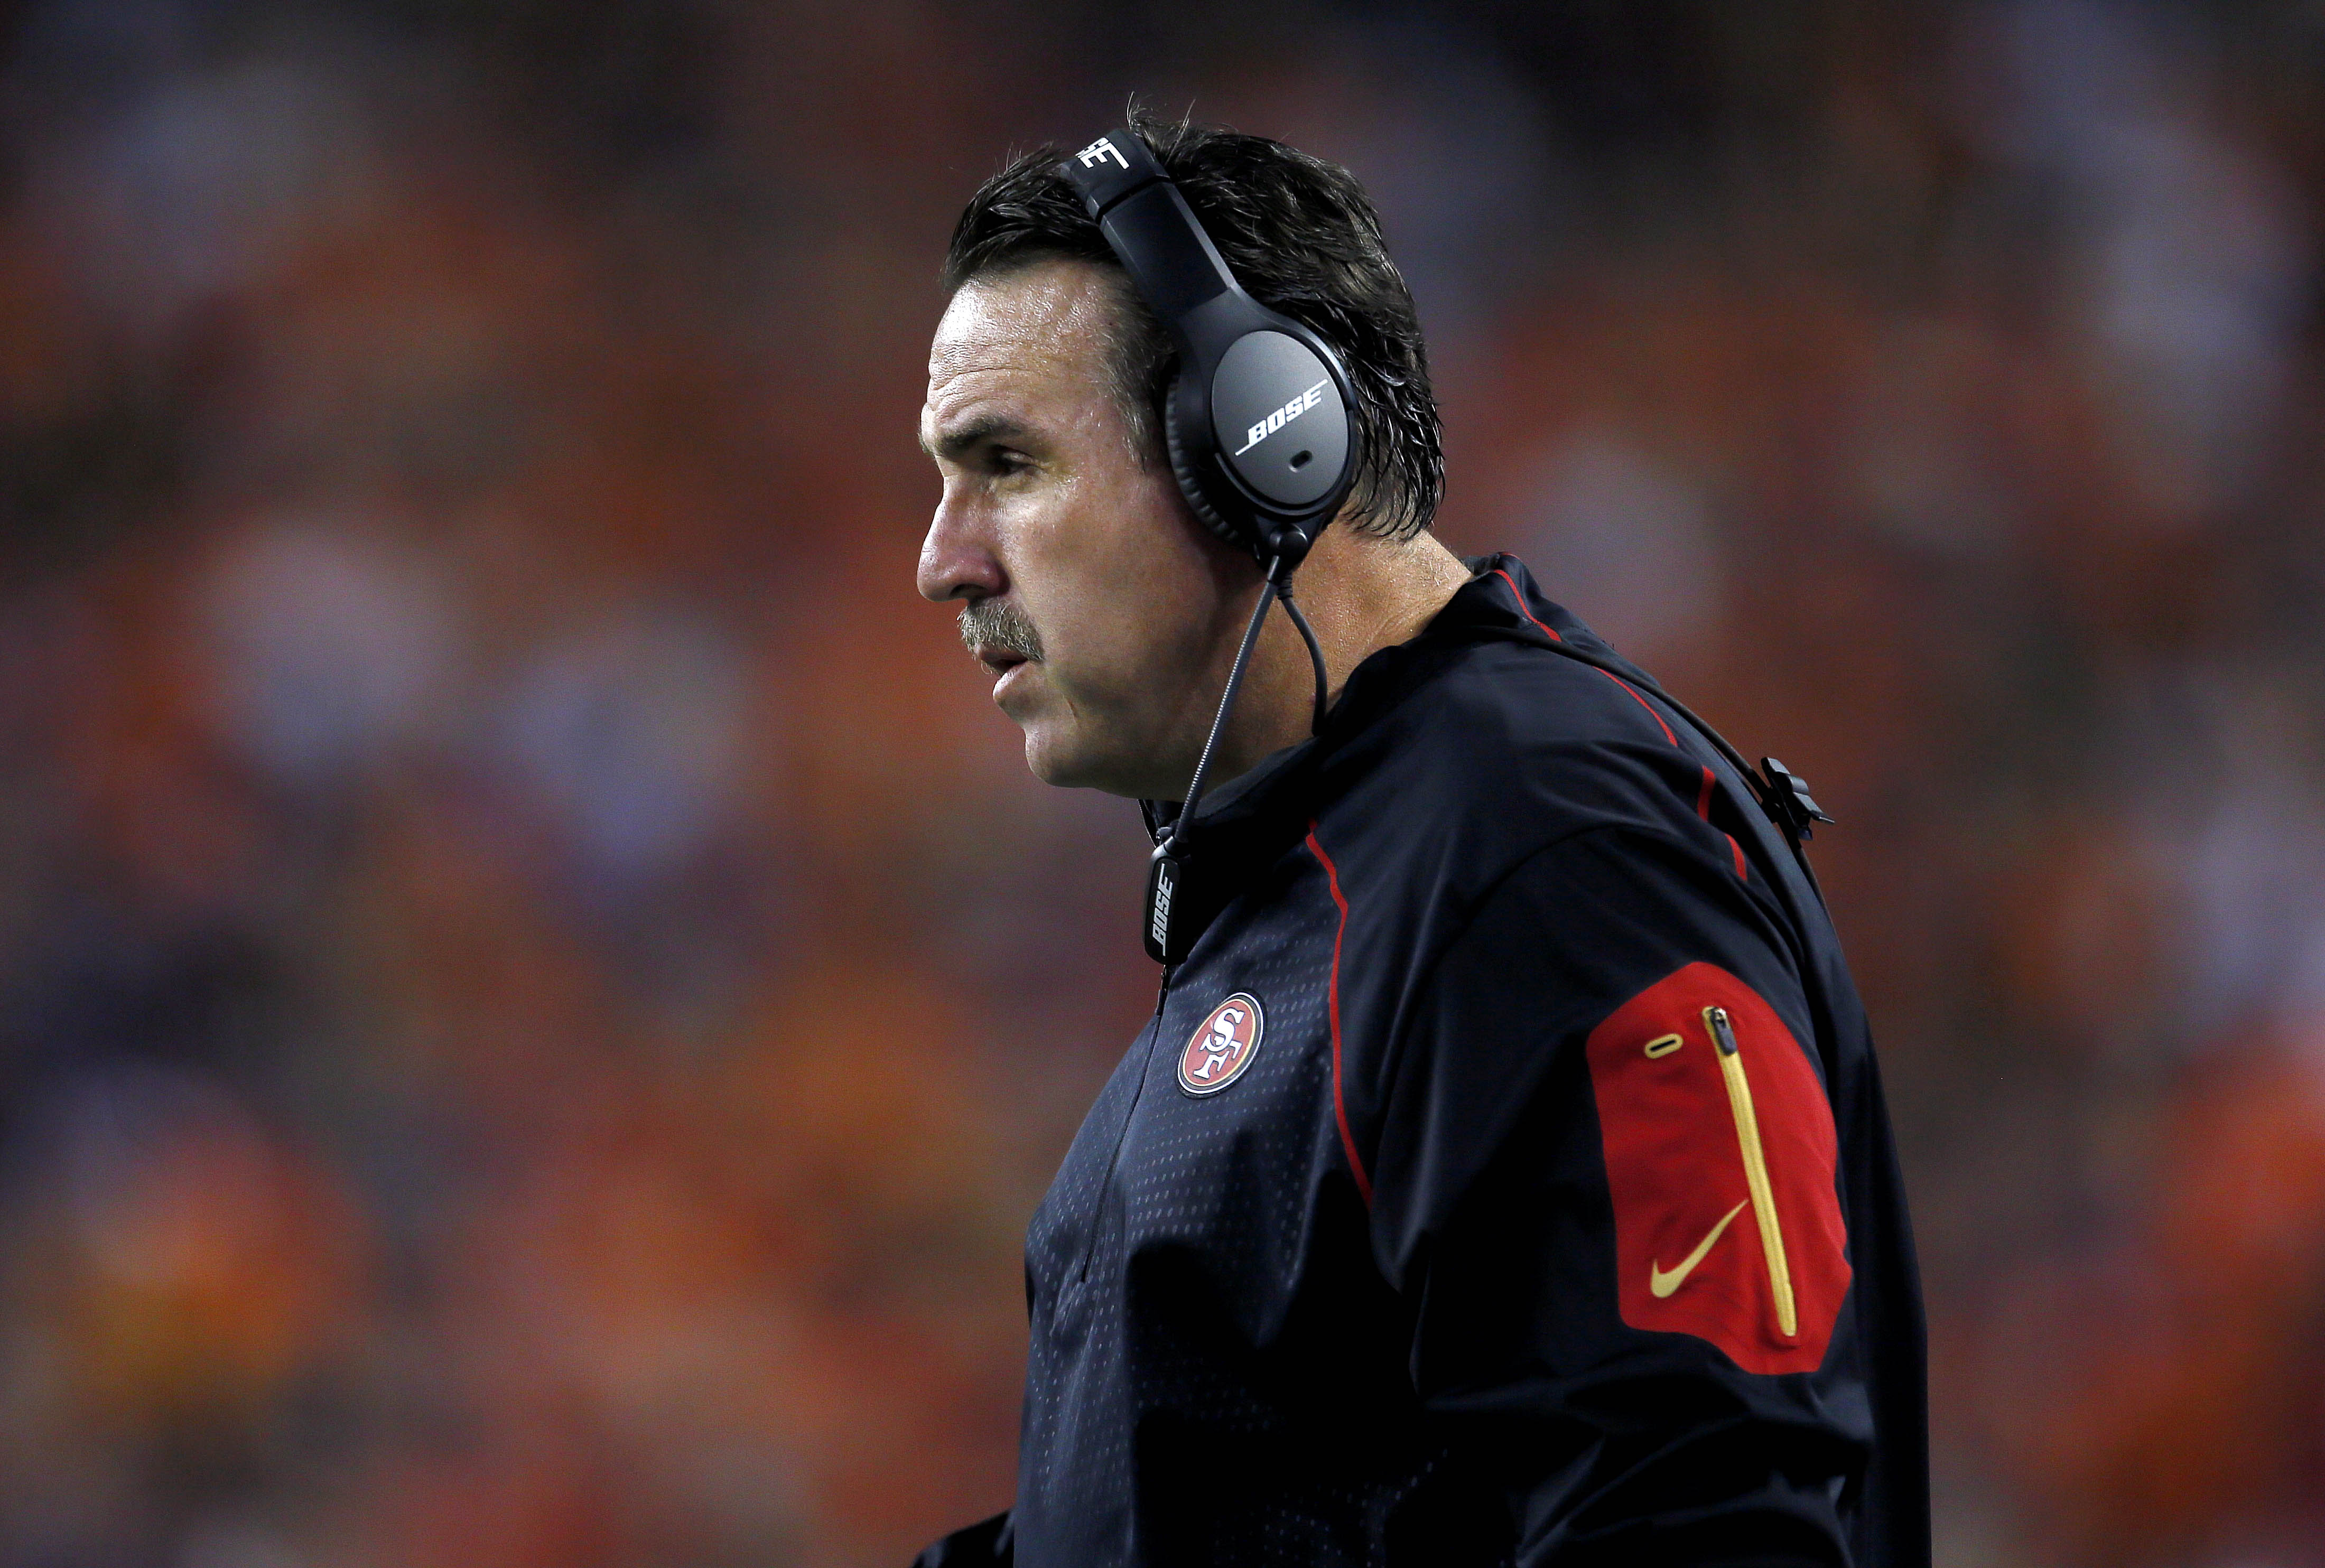 San Francisco 49ers coach Jim Tomsula stands on the sideline during the first half of an NFL preseason football game against the Denver Broncos, Saturday, Aug. 29, 2015, in Denver. (AP Photo/Joe Mahoney)